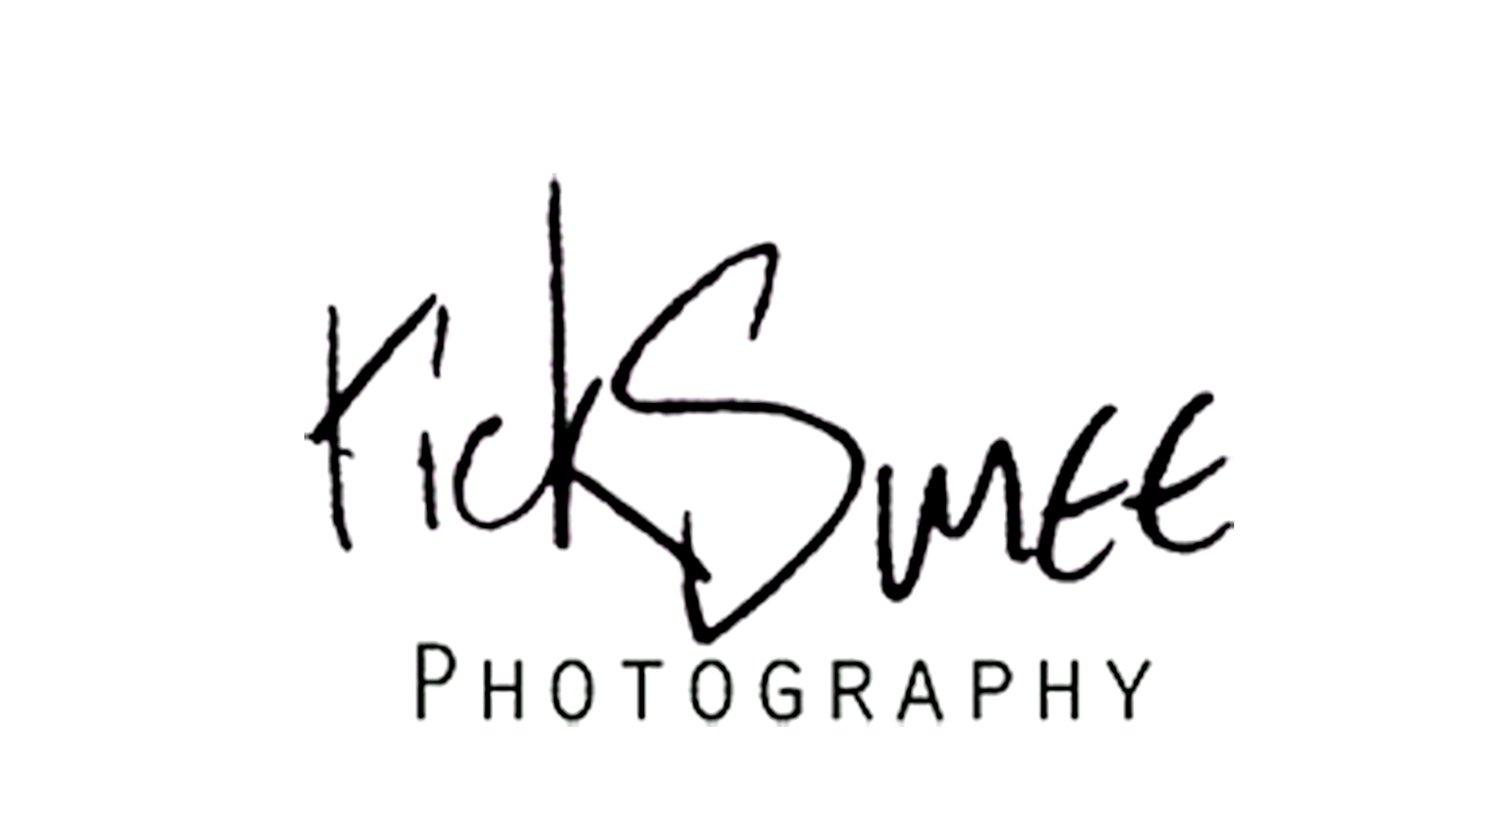 Rick Smee Photography